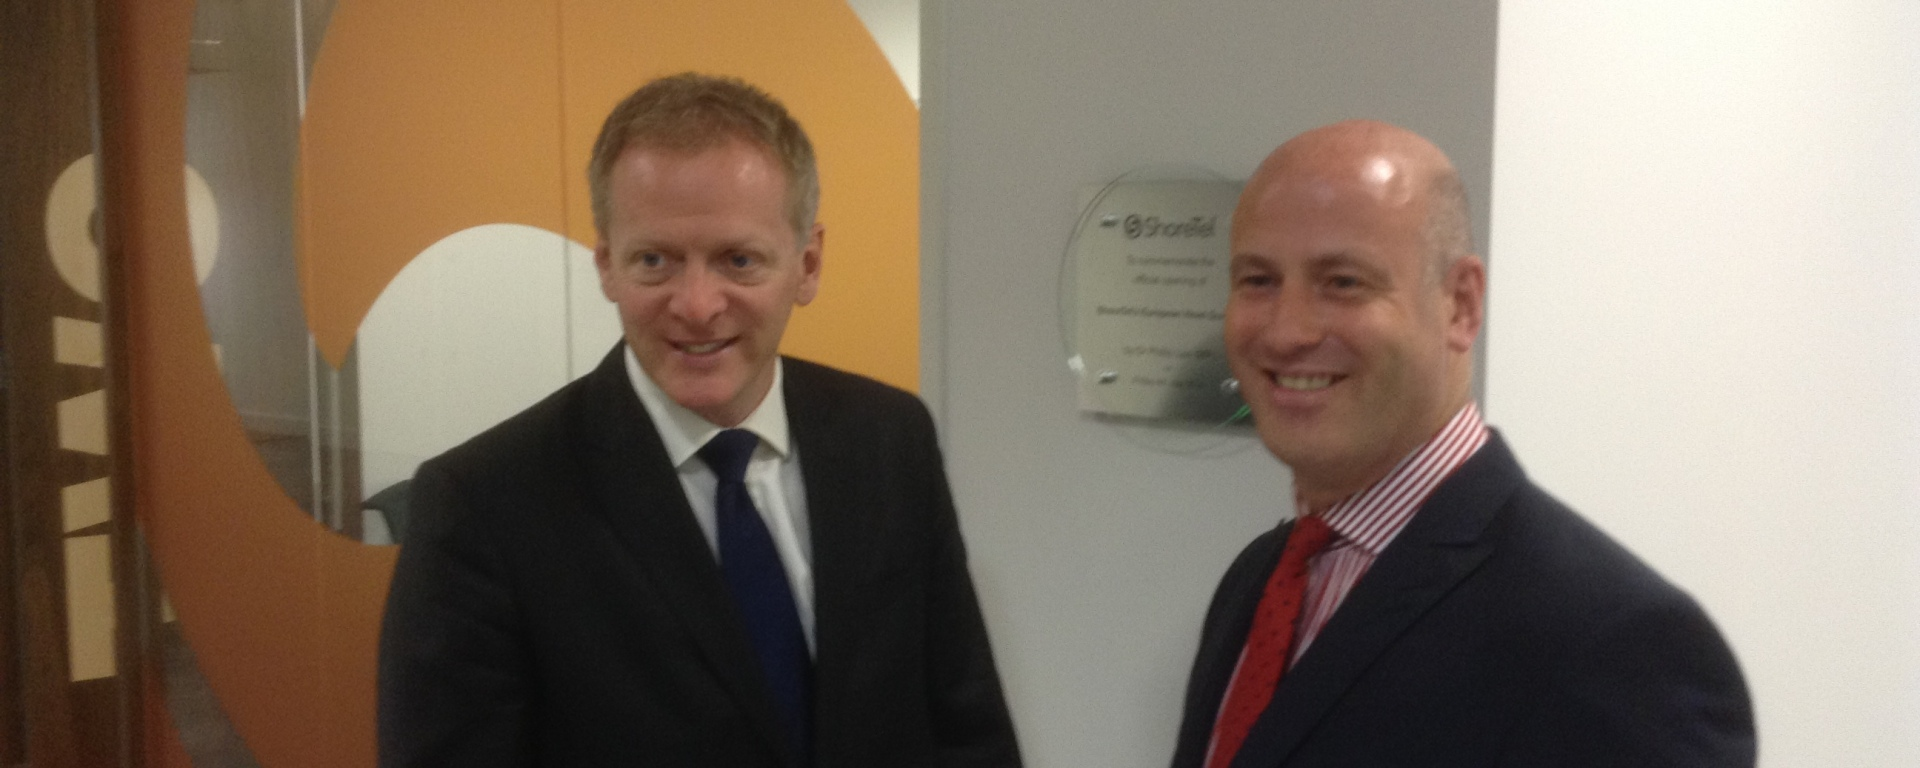 shoretel adrian hipkiss dr philip lee bracknell mp plaque